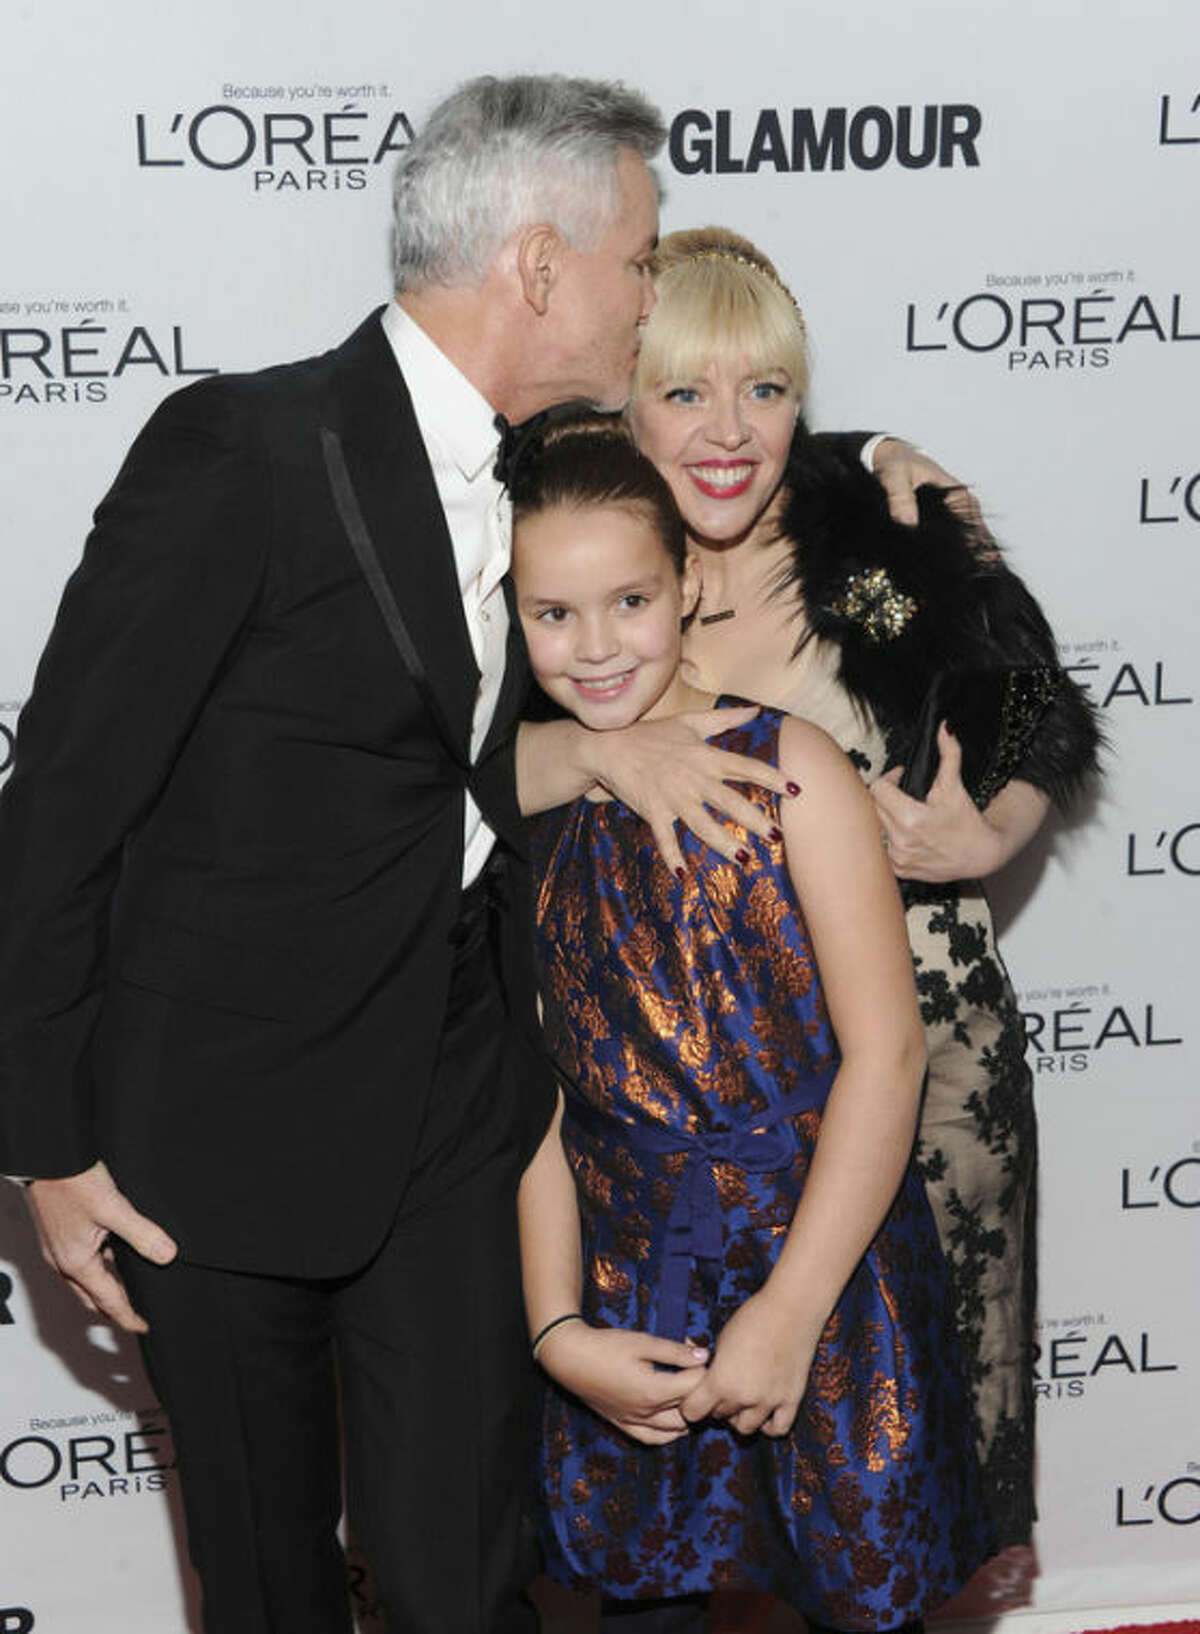 Honoree Catherine Martin and her husband, filmmaker Baz Lurhmann, and daughter Lillian attend the 23rd Annual Glamour Women of the Year Awards hosted by Glamour Magazine at Carnegie Hall on Monday, Nov. 11, 2013 in New York. (Photo by Evan Agostini/Invision/AP)